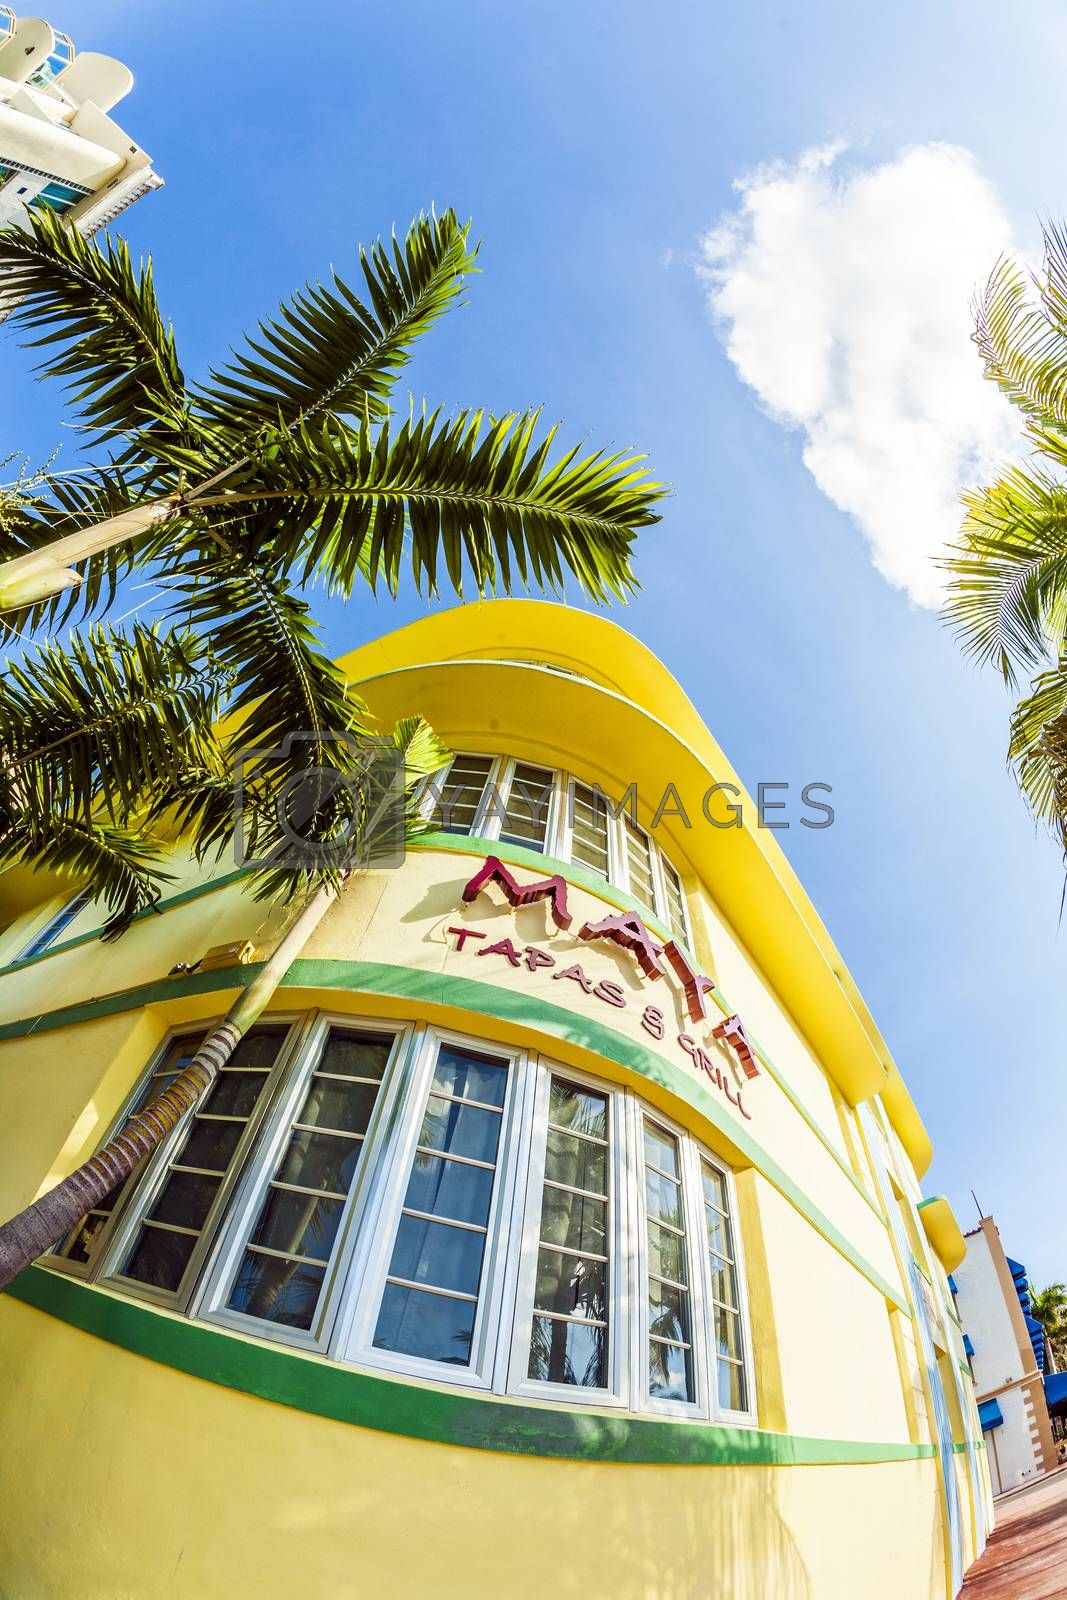 MIAMI, USA - JULY 31, 2010: facade of art deco building at Ocean drive with Maya Grill restaurantin Miami, USA. Art Deco architecture in South Beach is one of the main tourist attractions.